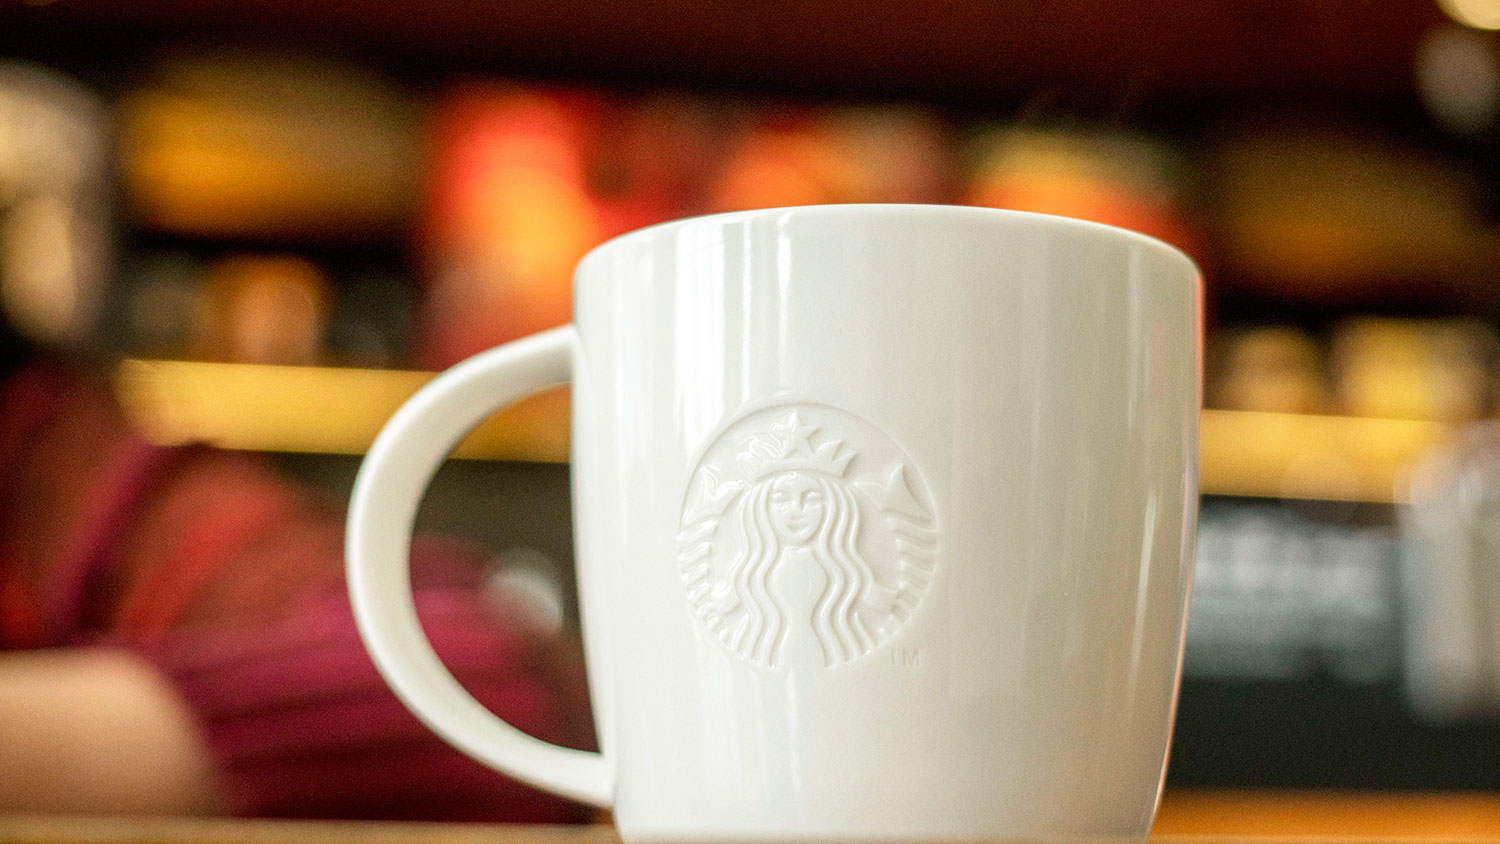 china upset about fake 'bring your own cup' free starbucks promotion